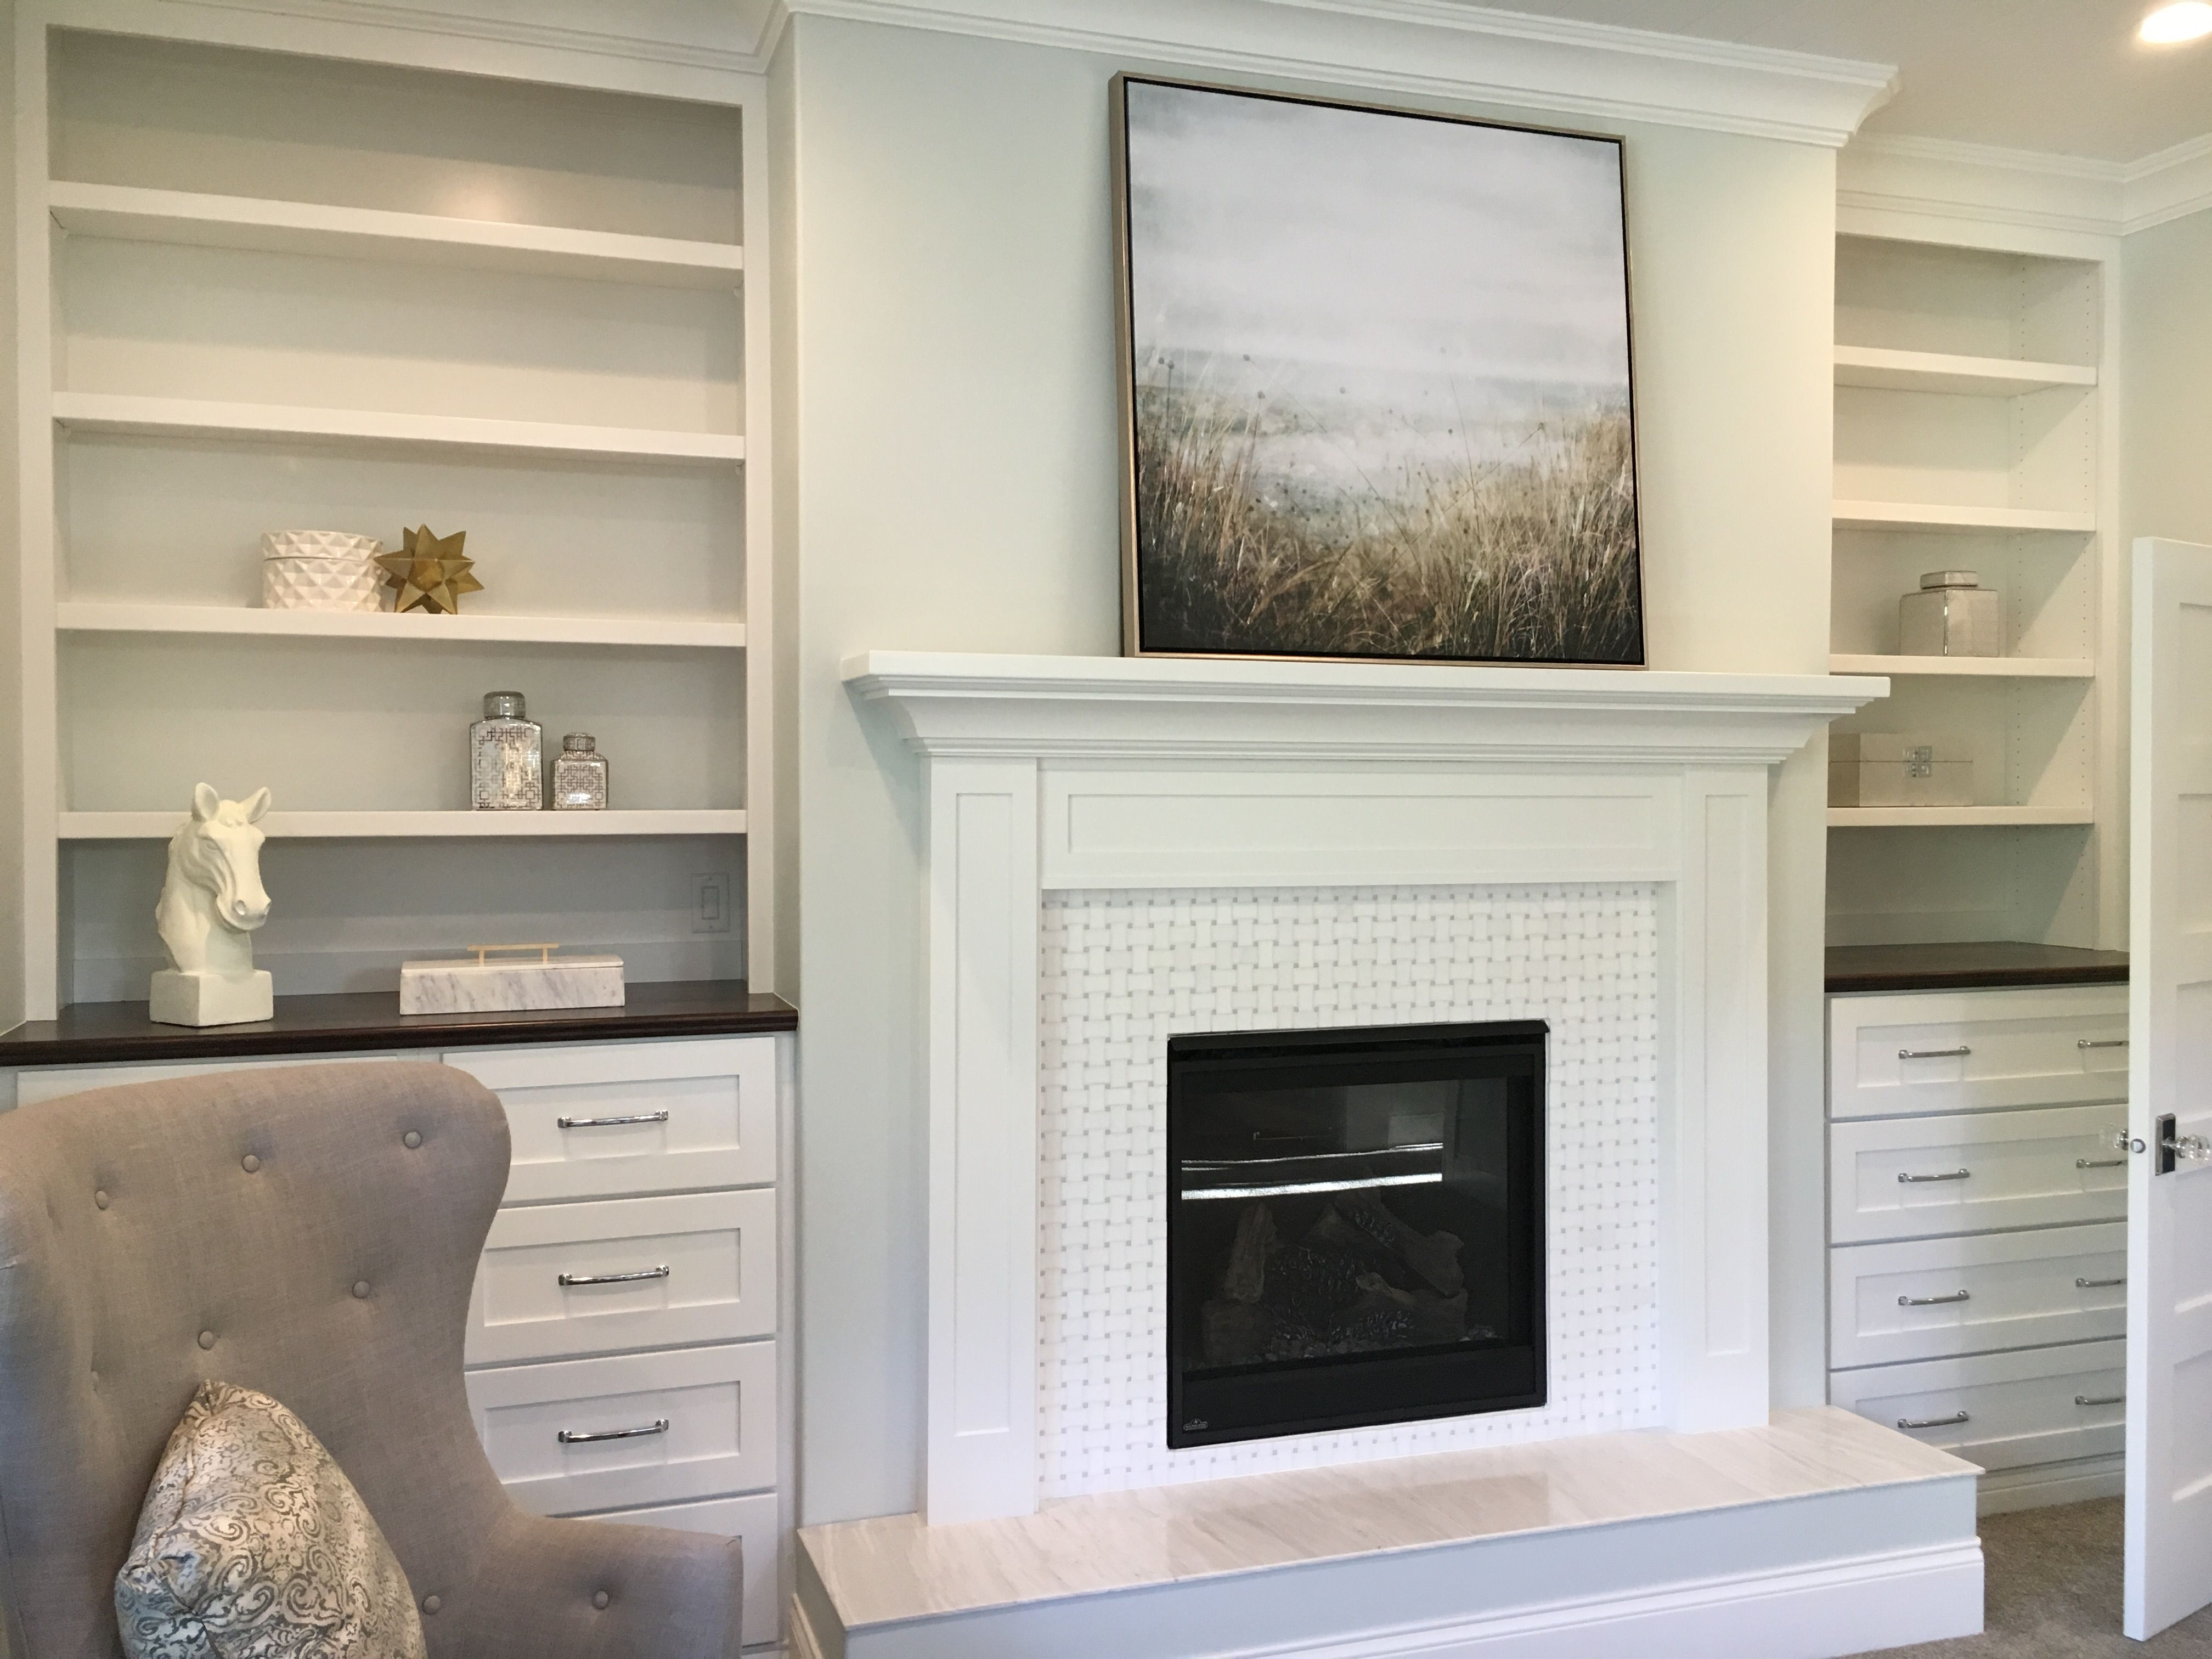 tall cabinets fireplace built in bookcases fireplace in 2019 rh pinterest com tall cabinets next to fireplace Tall Fireplace Ideas